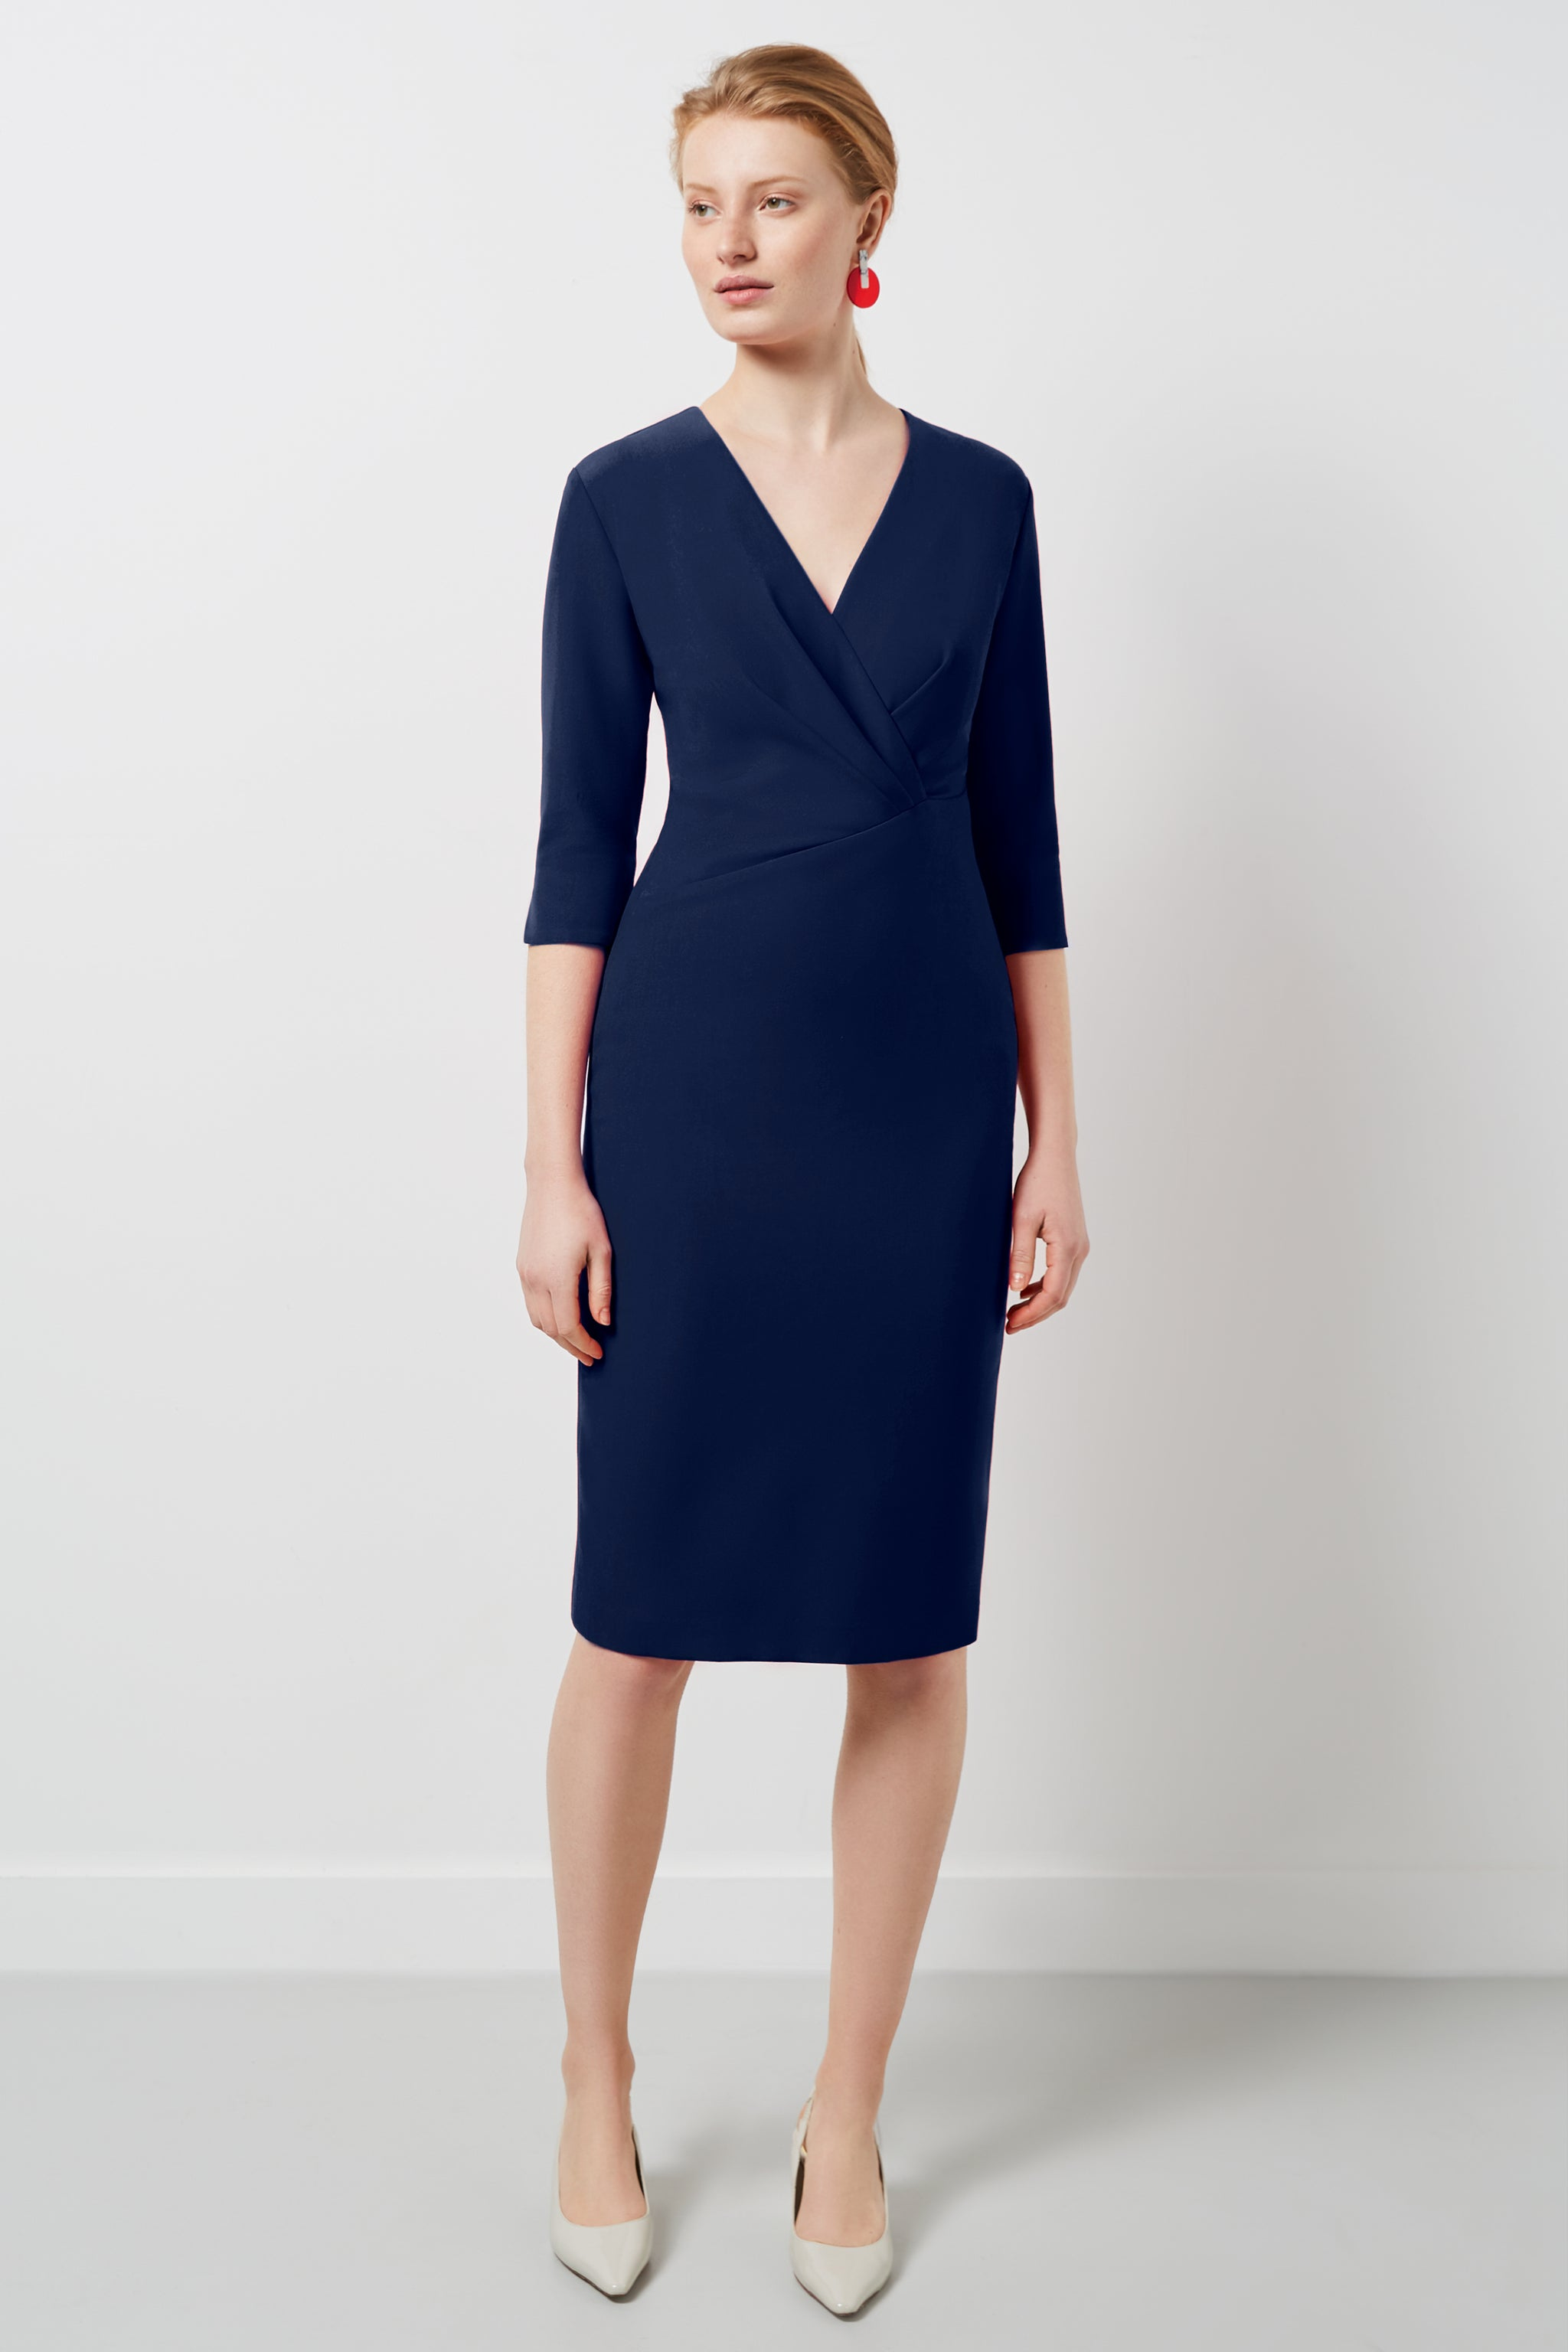 Wigmore Navy Dress